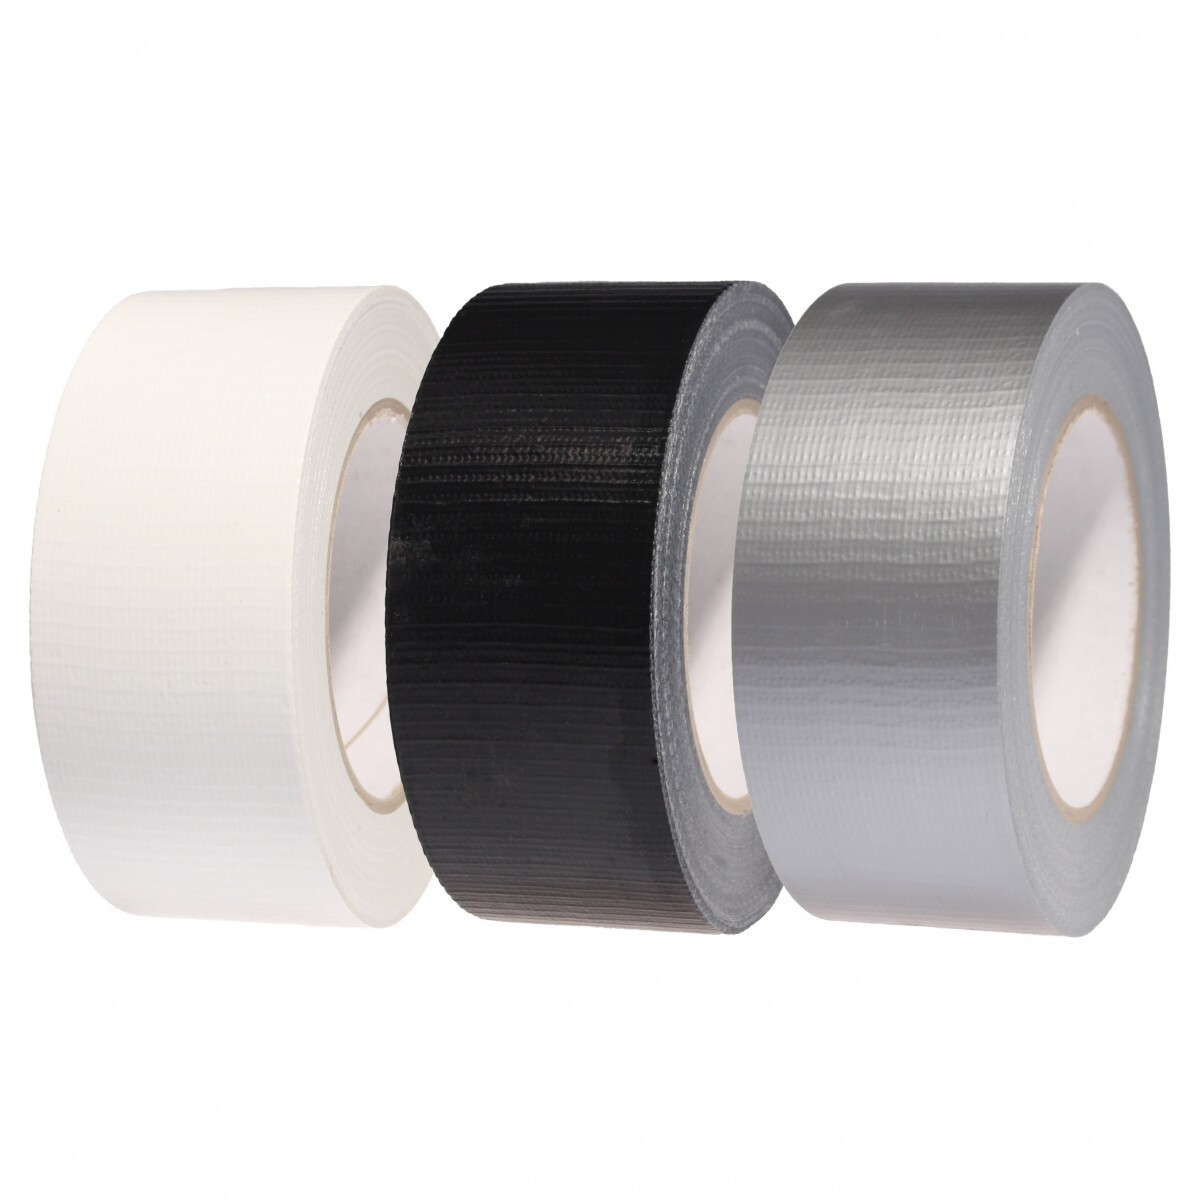 "HIPPO 2"" Gaffa Tape - silver, black or white"